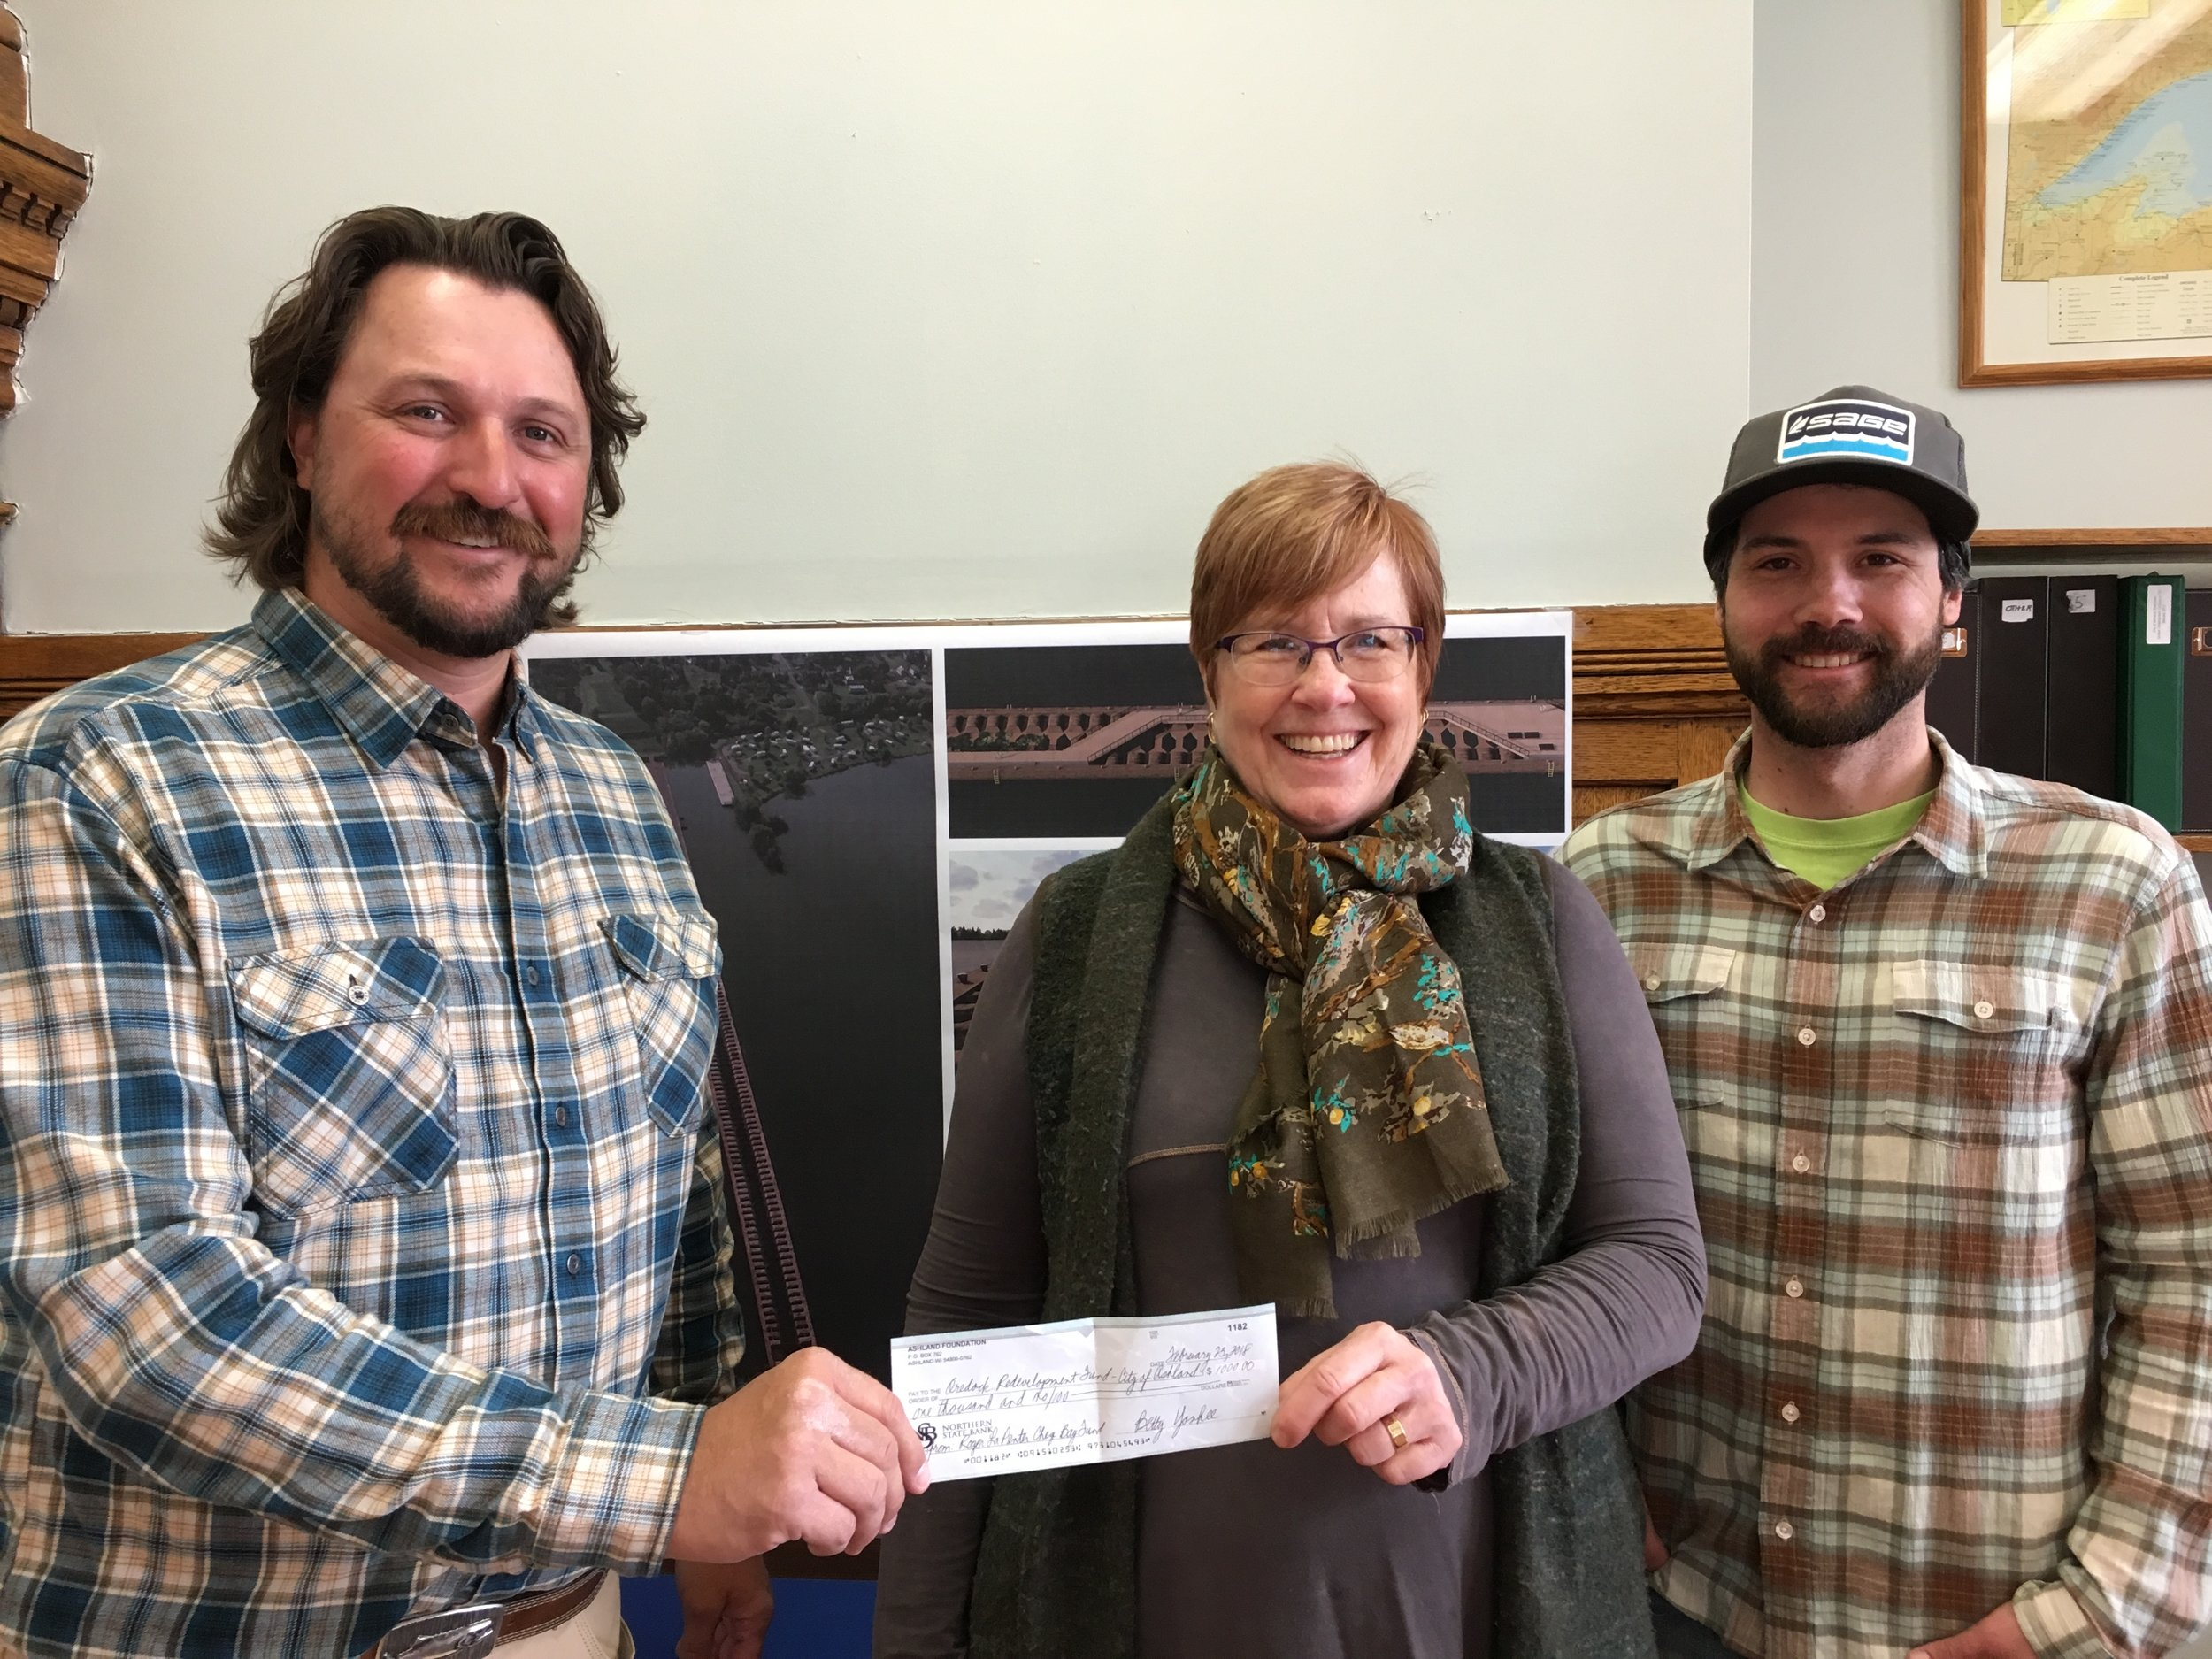 Dave Gellatly and Luke Kavajecz present Ashland Mayor Deb Lewis with a donation from the Roger Lapenter Chequamegon Bay Fund for the Ore Dock Redevelopment.